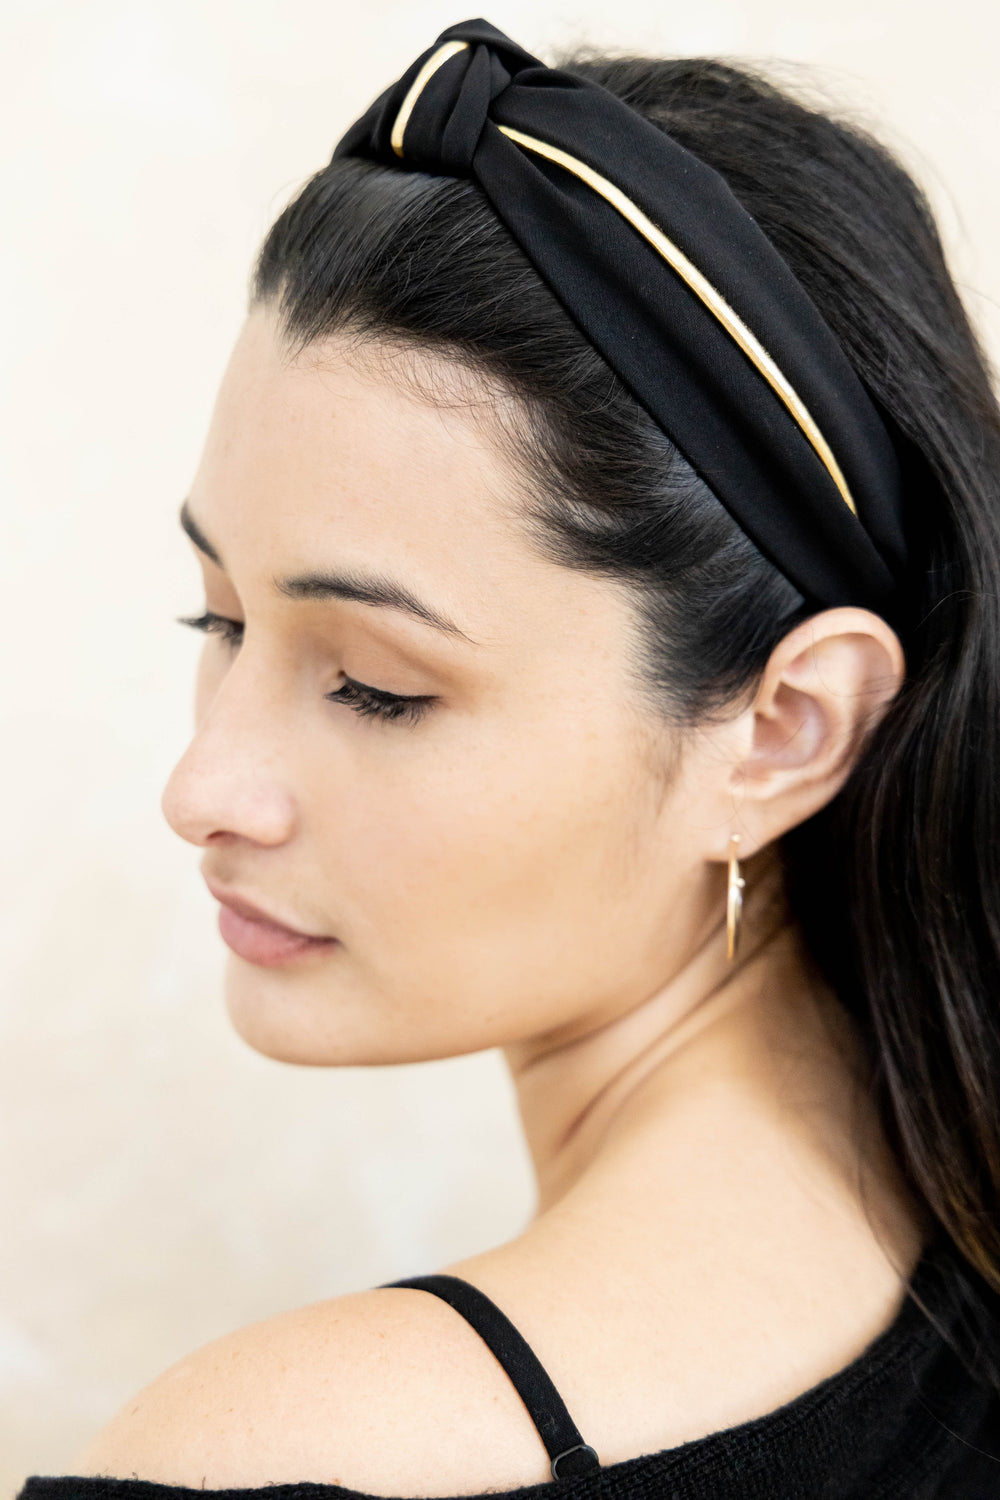 Black and gold headband on model